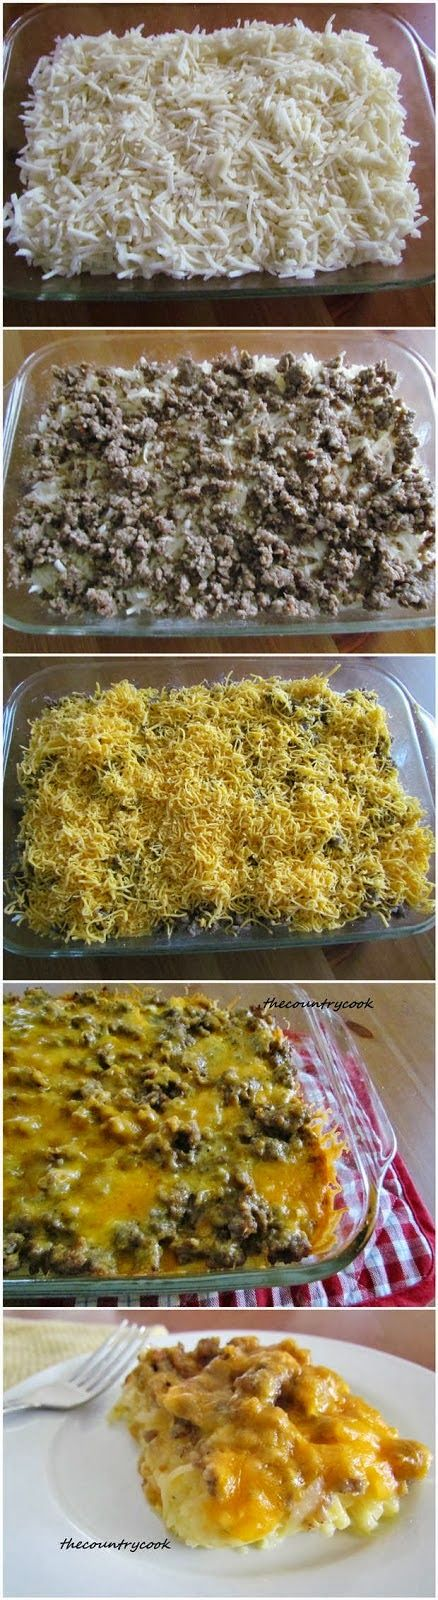 Sausage Hashbrown Breakfast Casserole - MADE